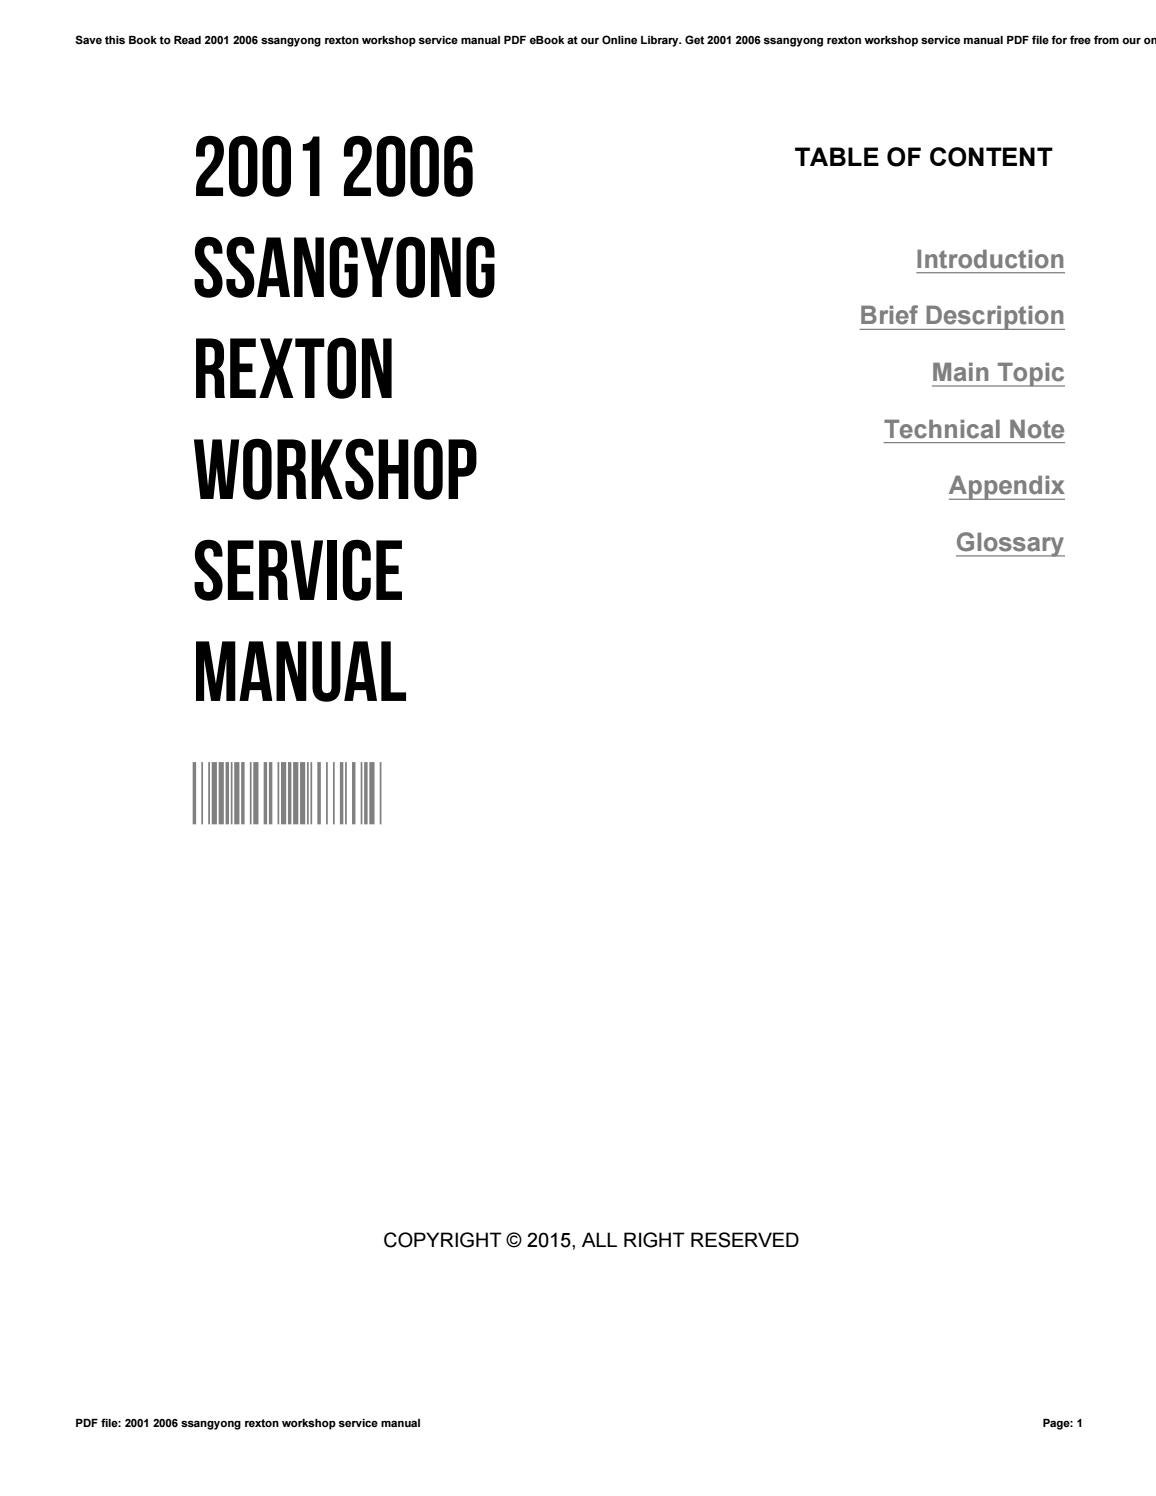 2001 2006 ssangyong rexton workshop service manual by